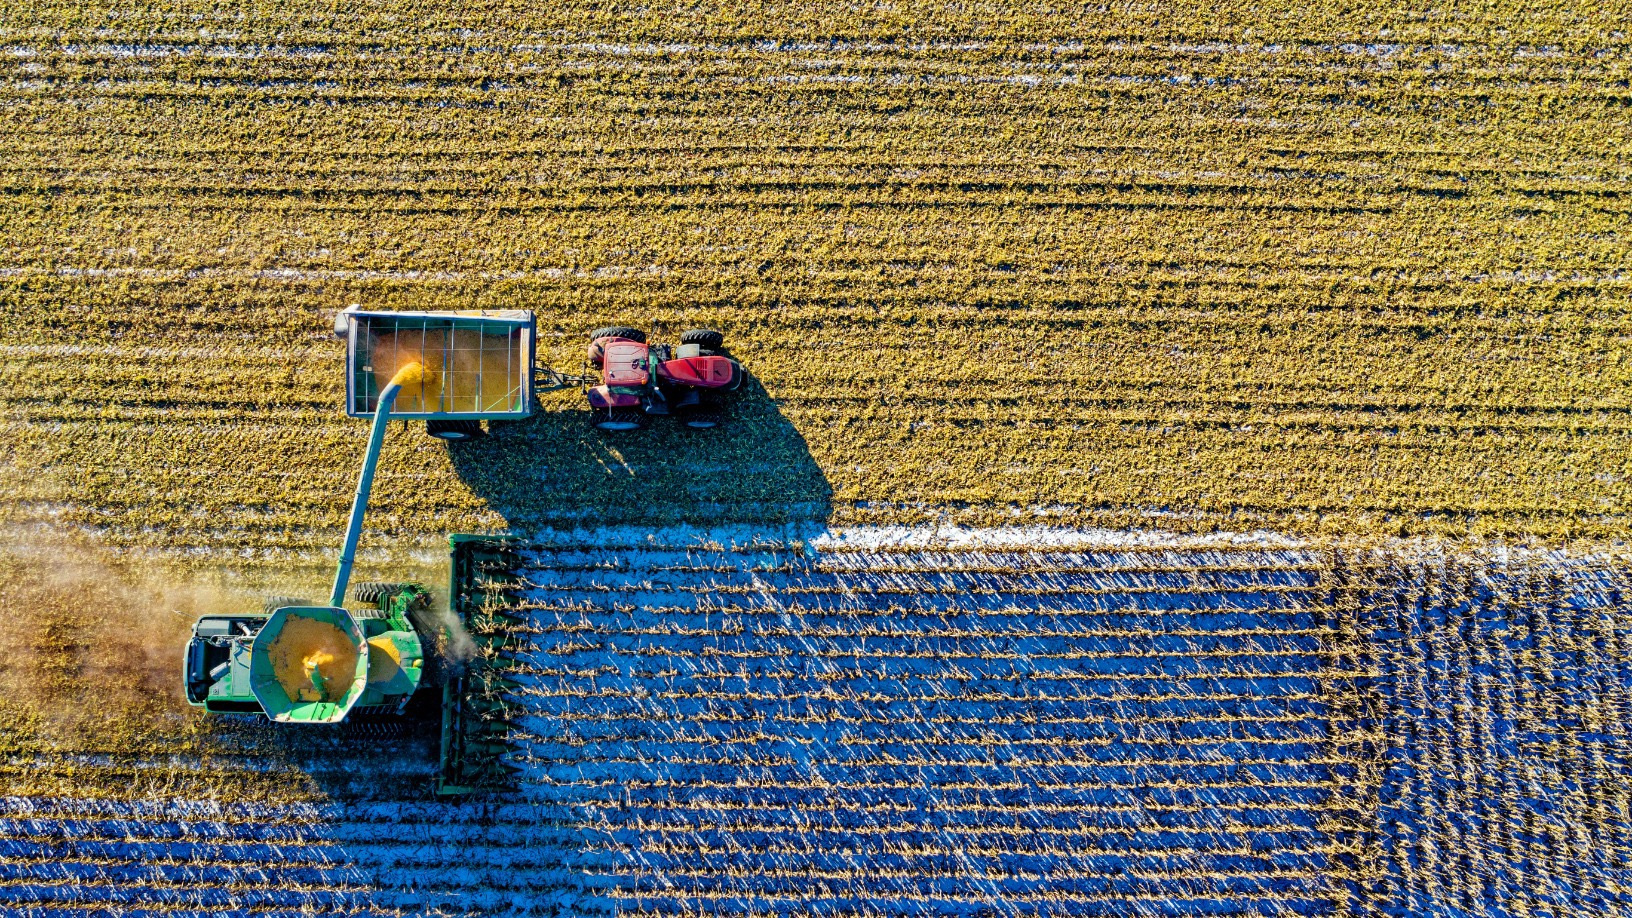 FluroSat: Combining satellite imagery and farm data to predict crop issues